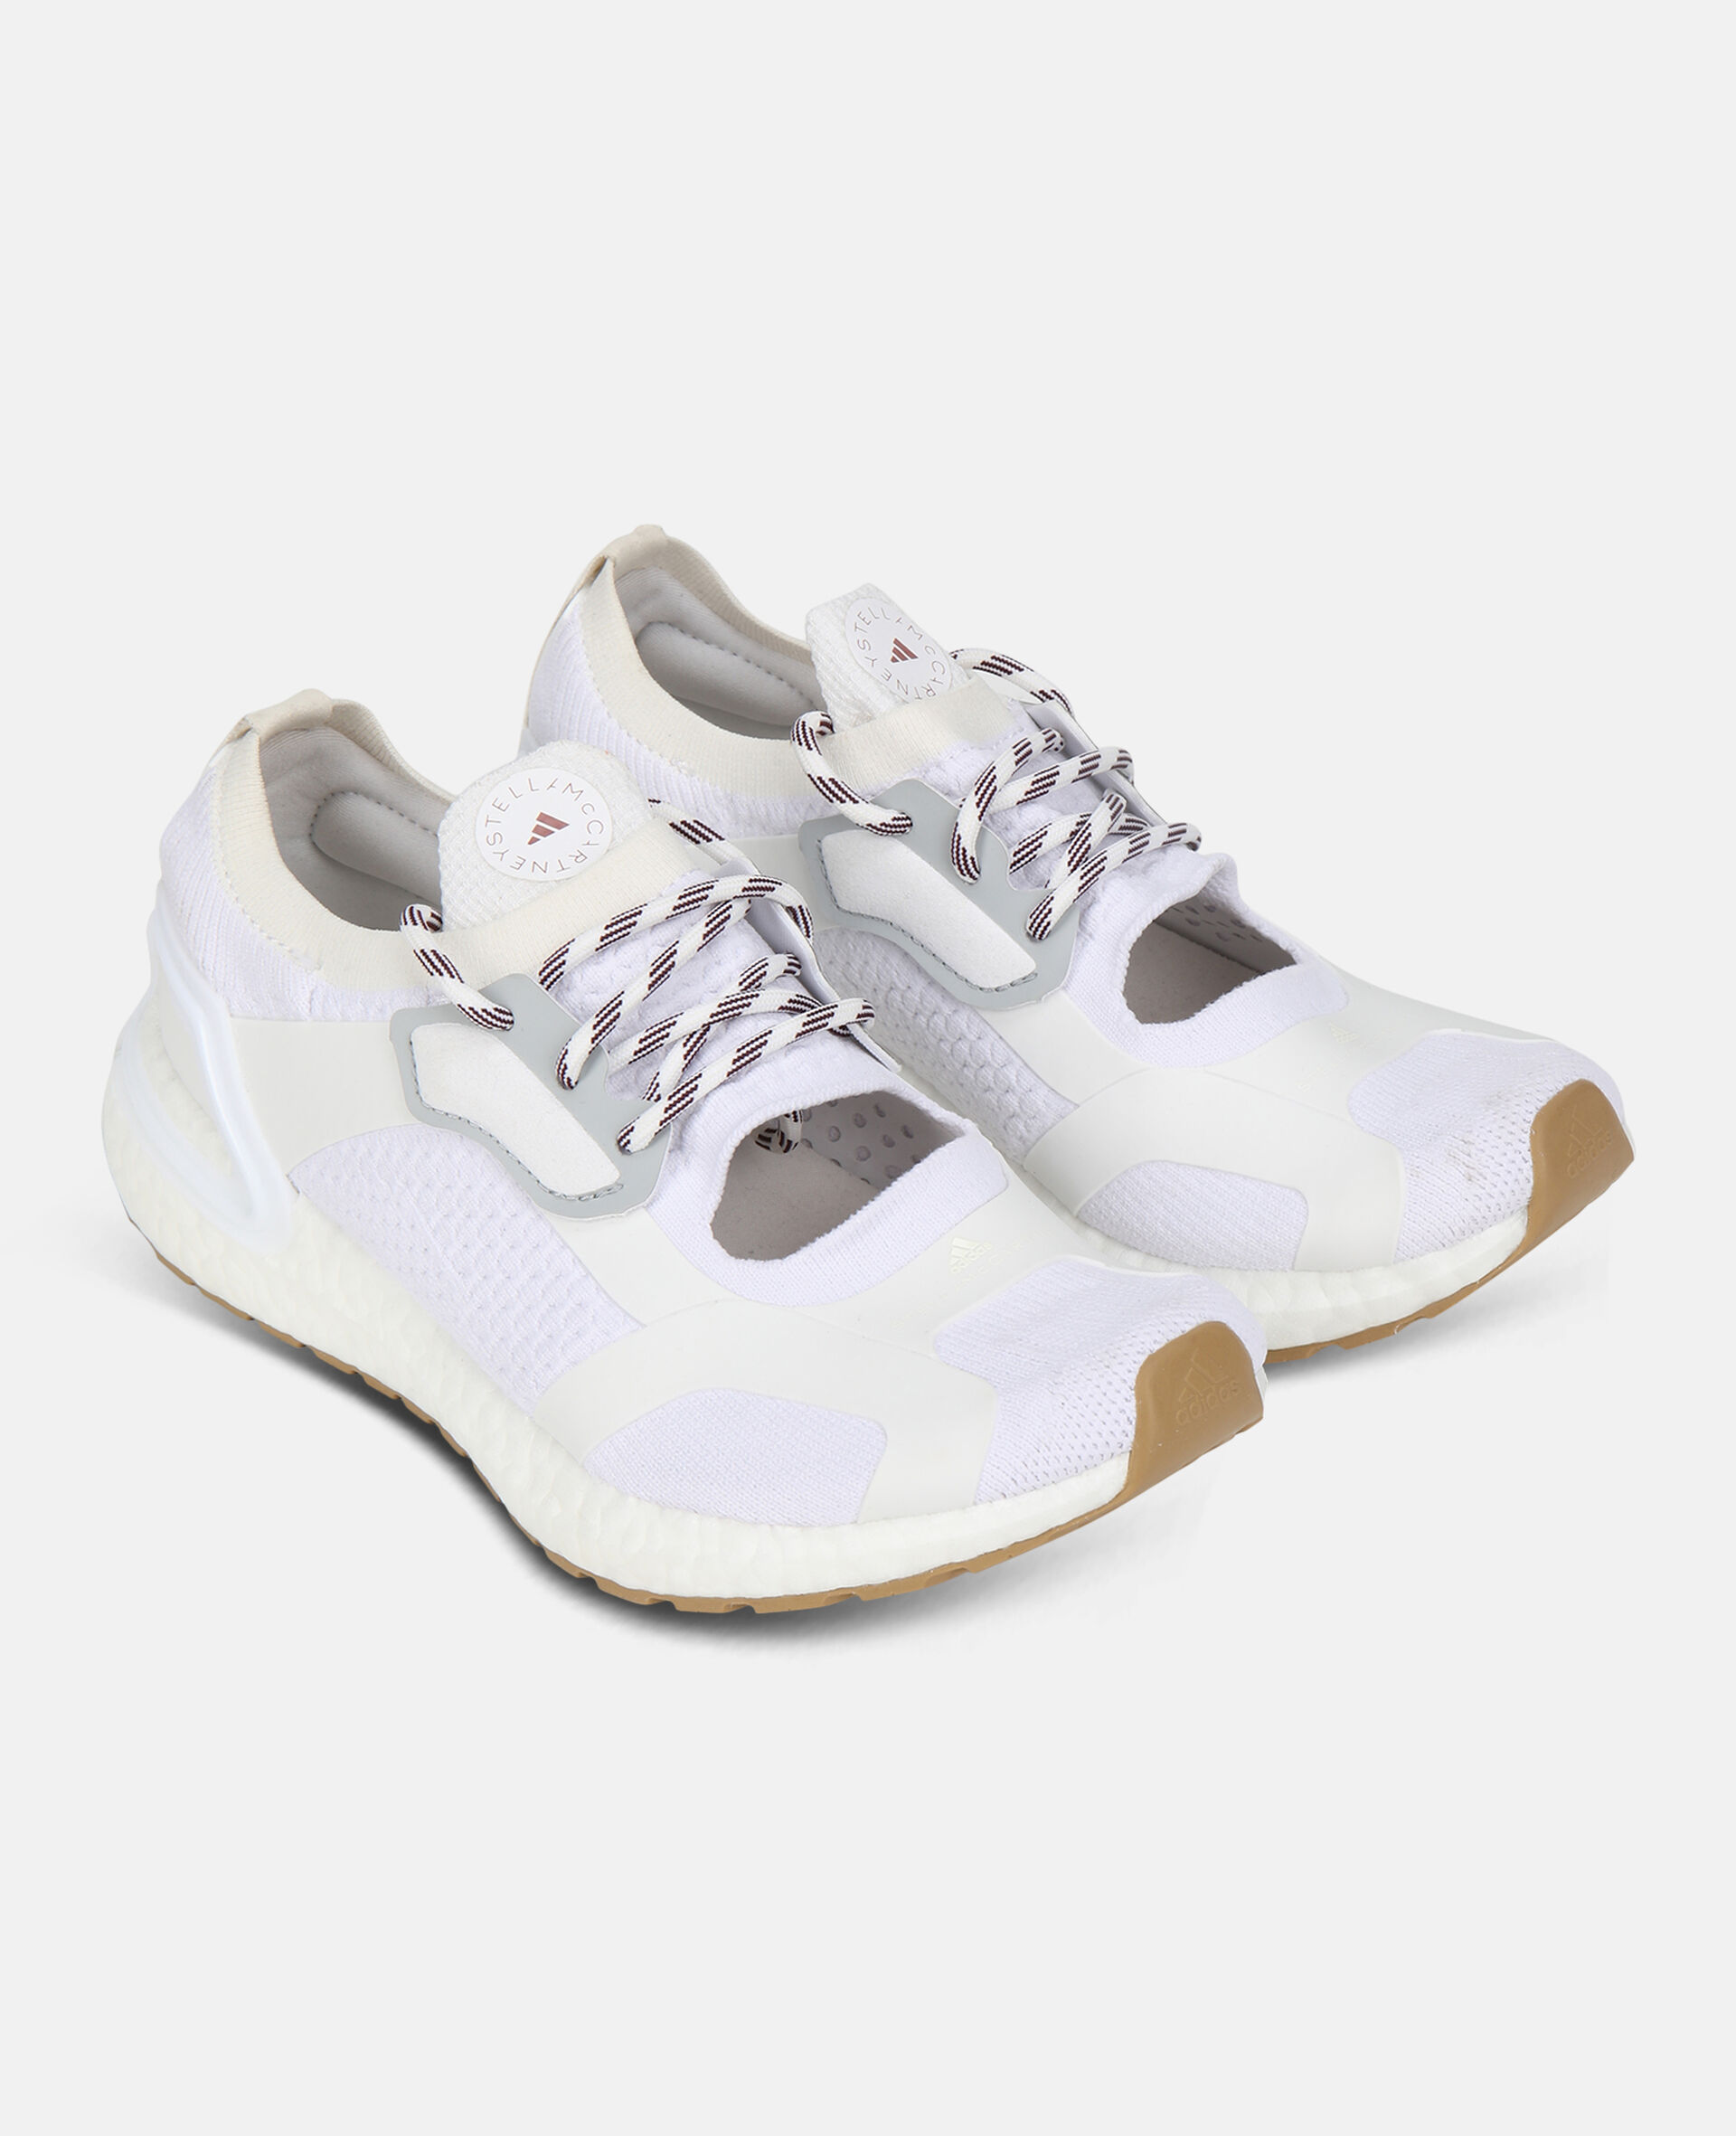 White Ultraboost Trainers-White-large image number 1